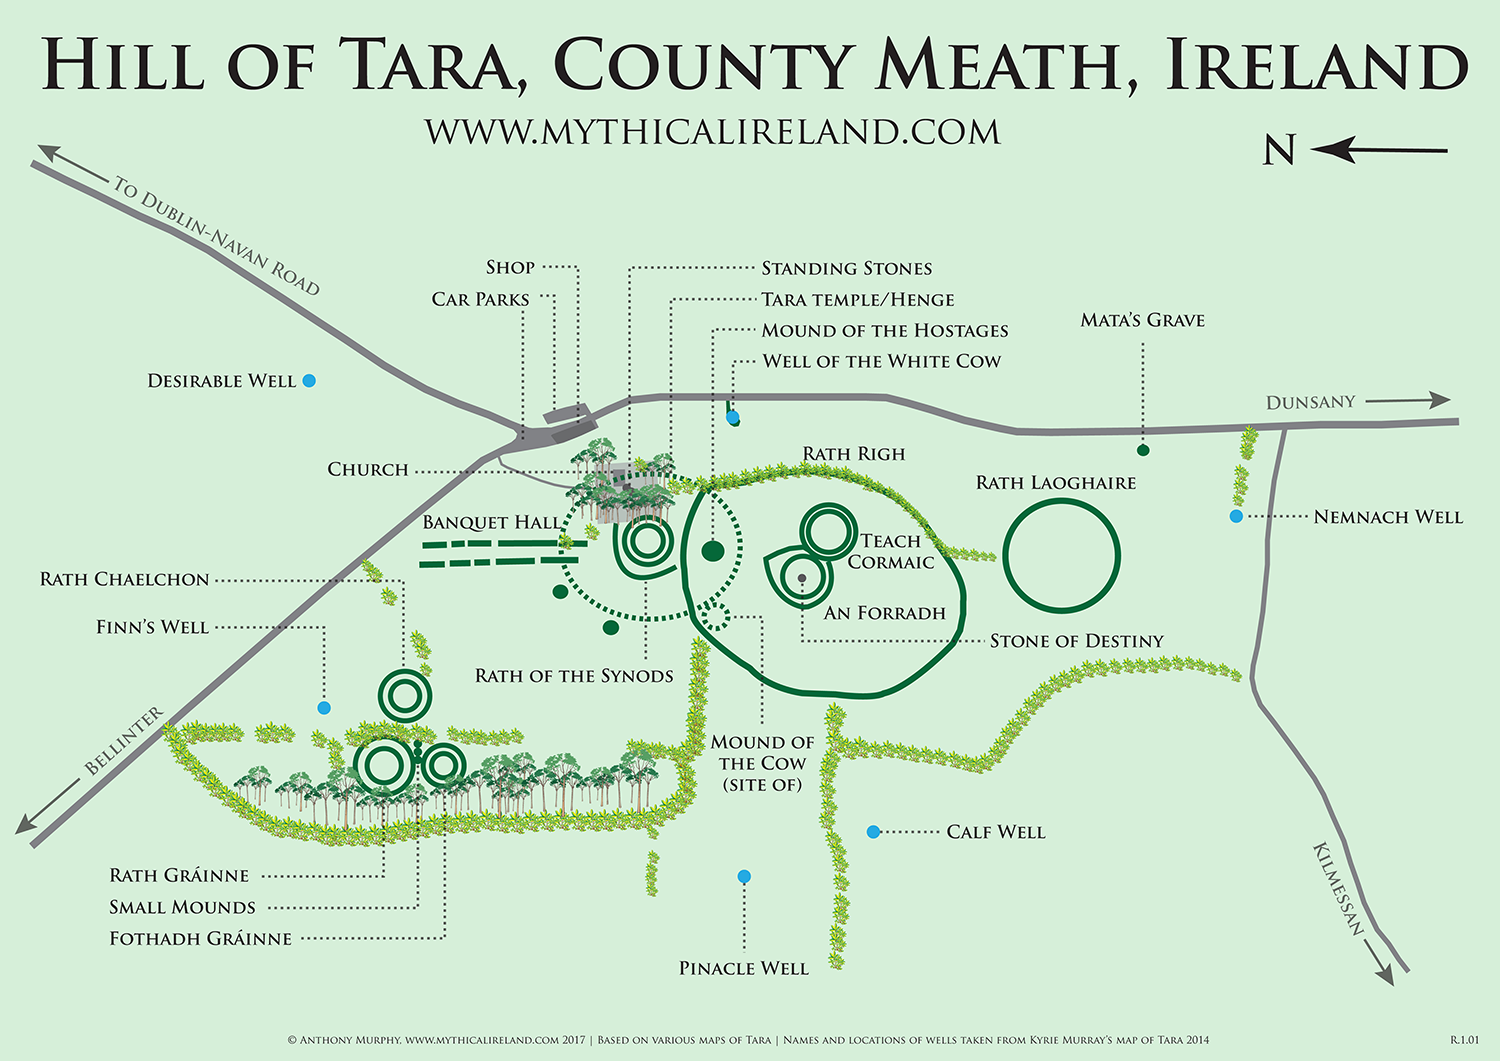 Mythical Ireland | Ancient Sites | The Hill of Tara – Teamhair